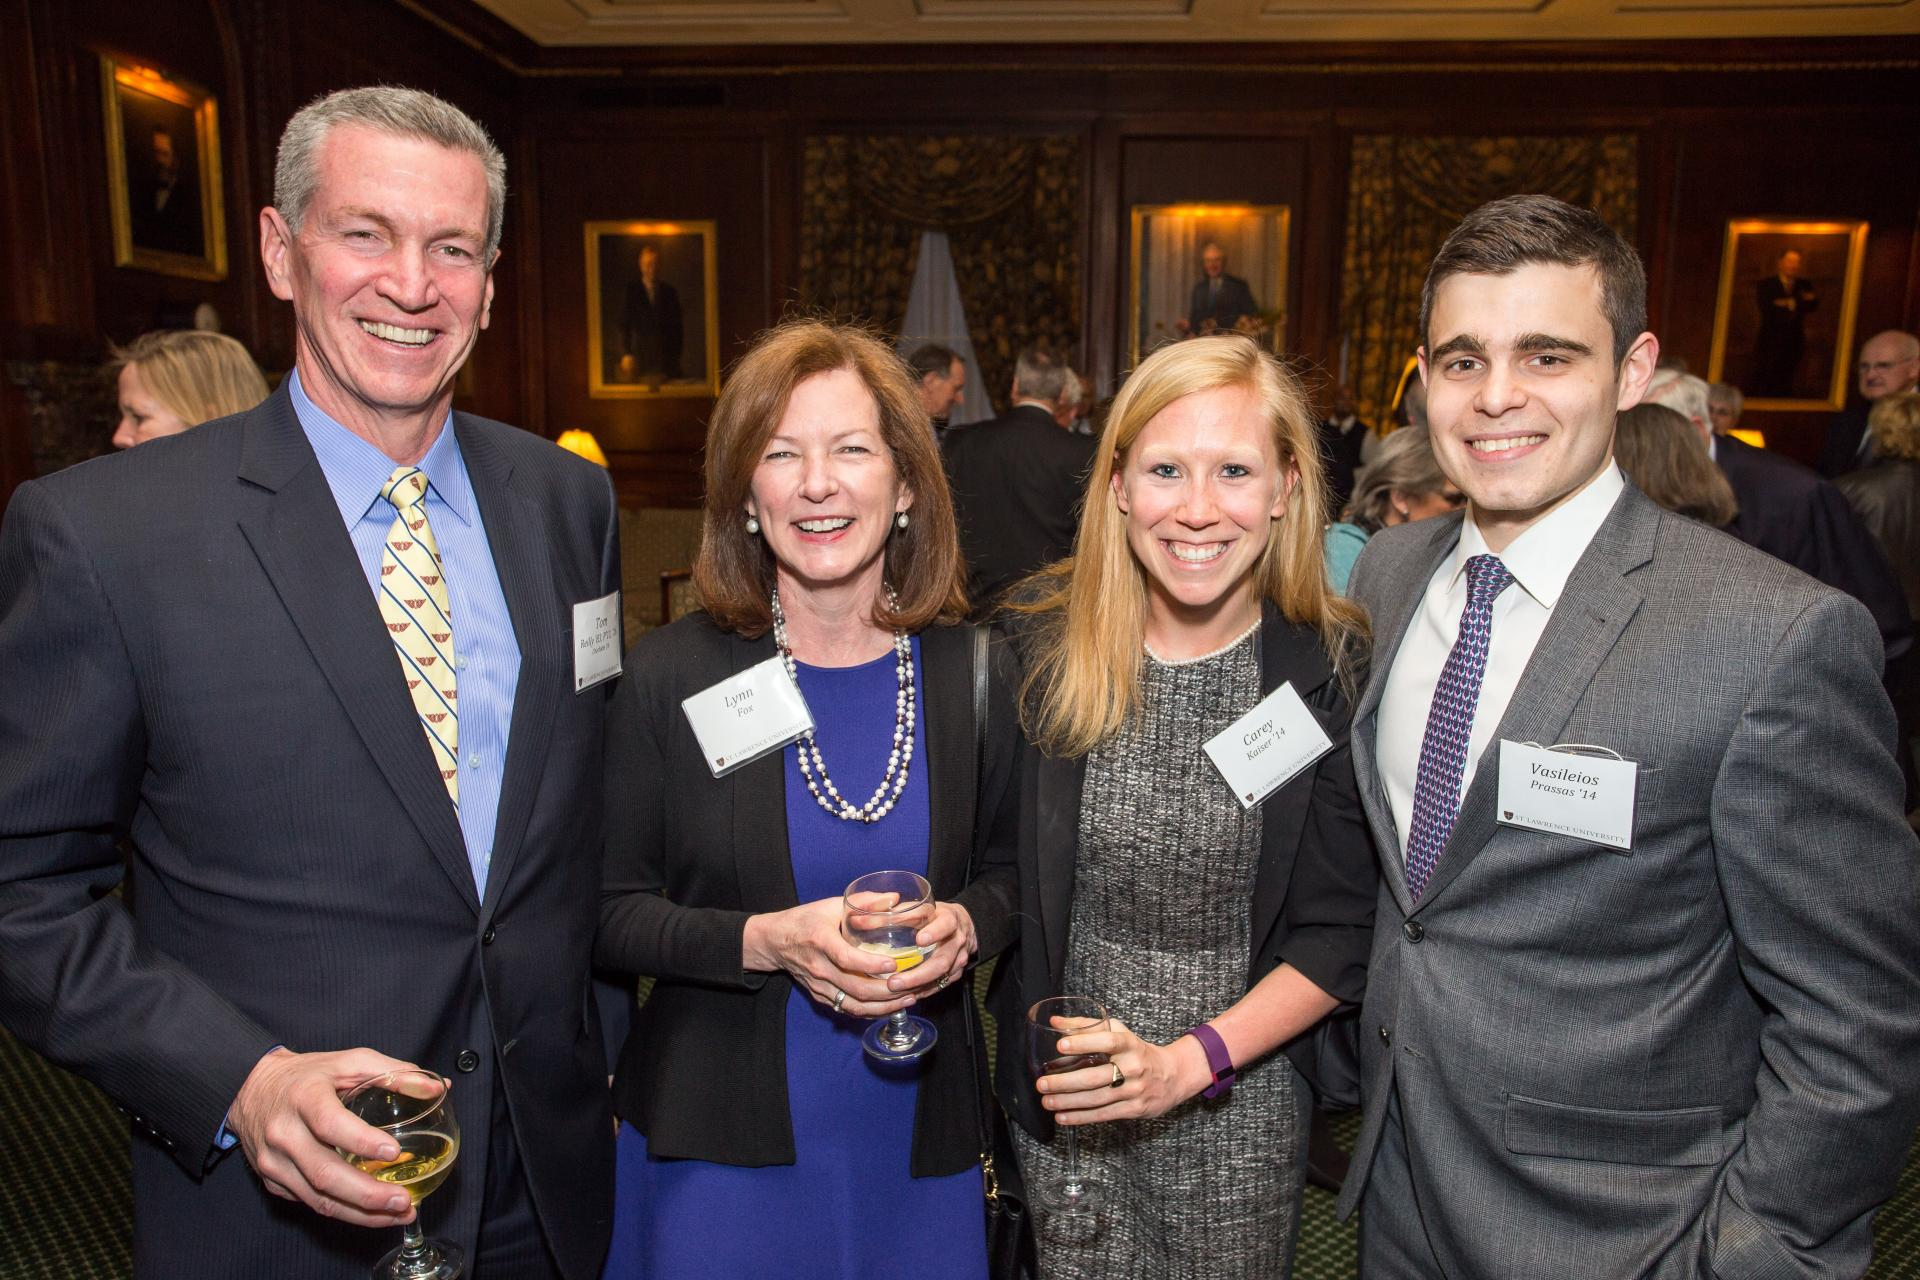 Left to Right: Tom Reilly '83, P'11, '16, Lynn Fox, Carey Kaiser '14, Vasileos Prassas '14. Fox, Kaiser and Prassas spoke about experiential learning and the alumni network in New York City.